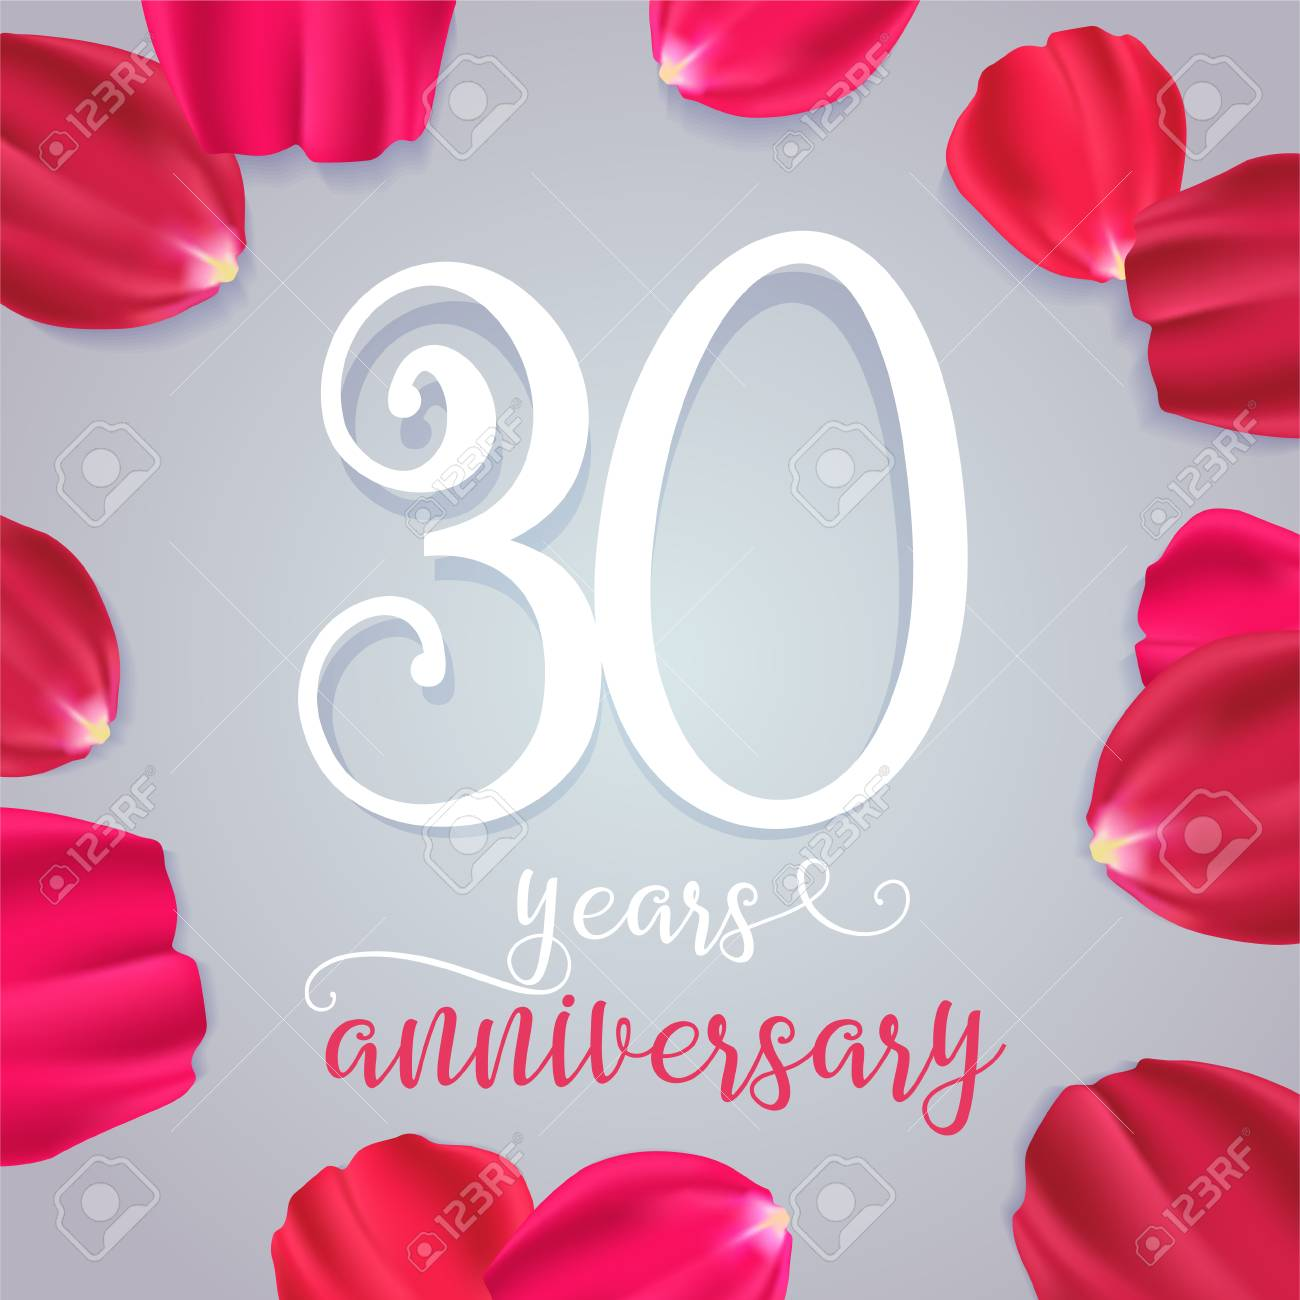 30 Years Anniversary Vector Icon Graphic Design Element With Royalty Free Cliparts Vectors And Stock Illustration Image 91534248